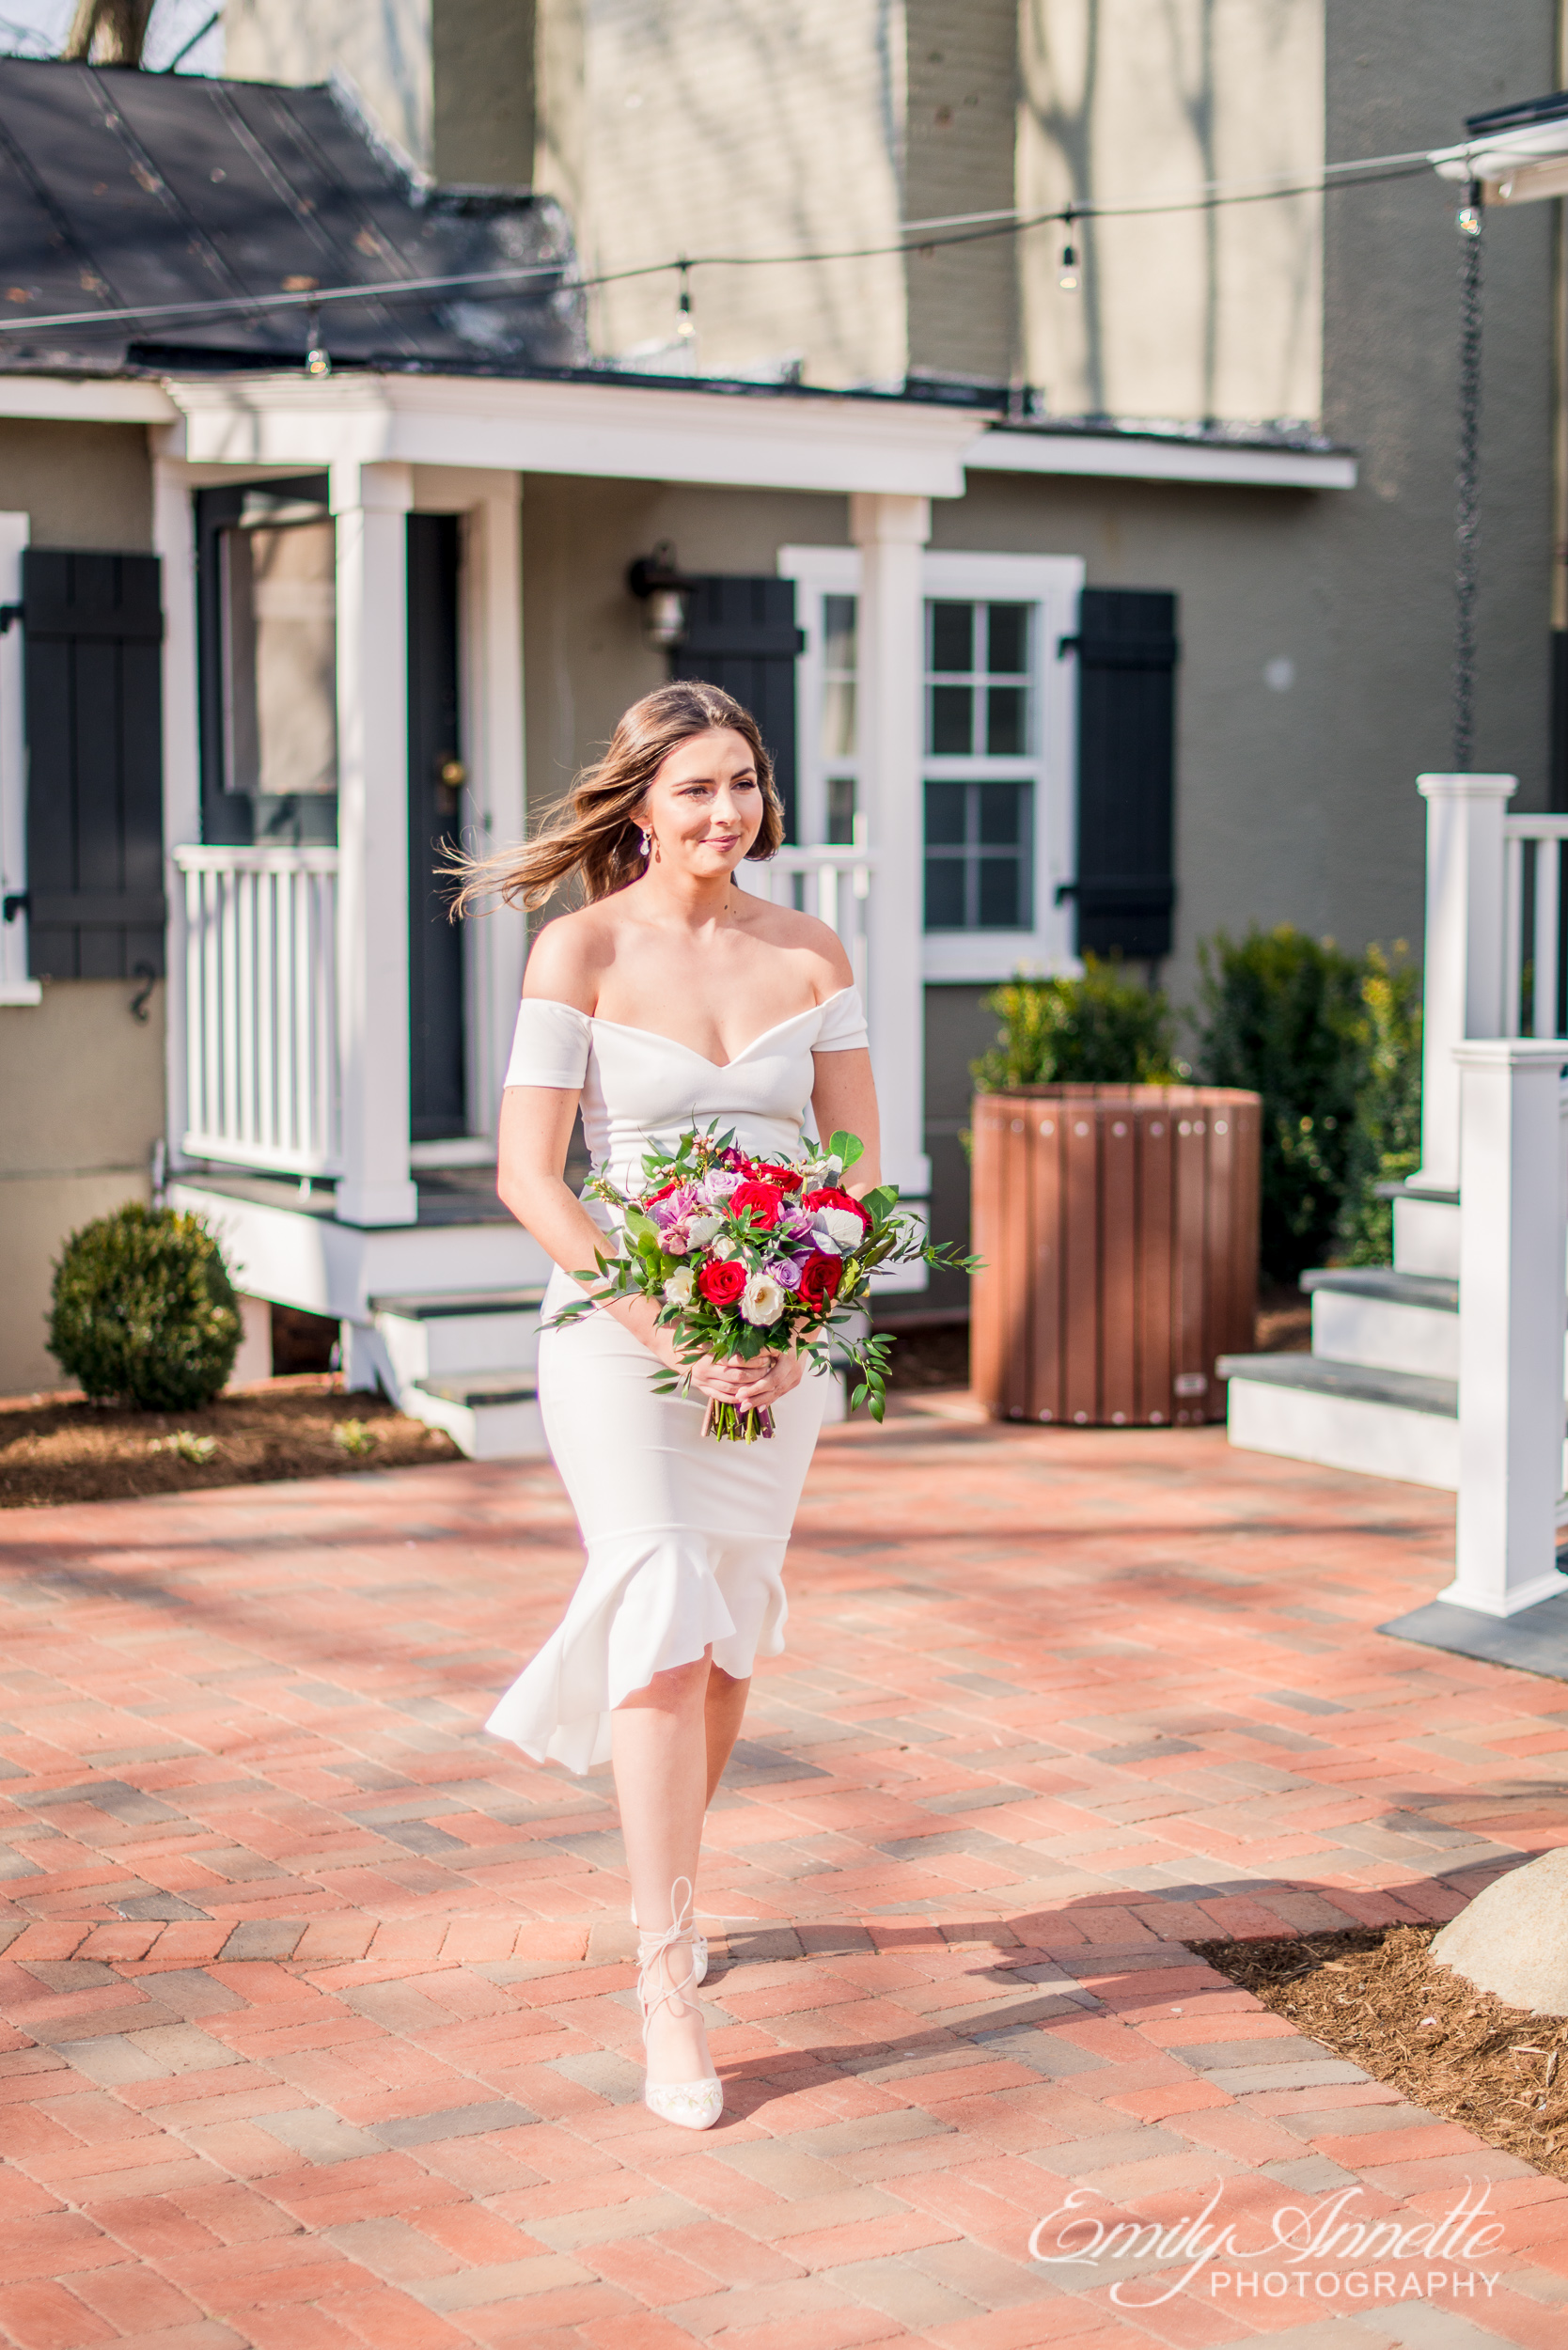 A bride walking down the aisle during her spring wedding at Fleetwood Farm Winery in Leesburg, Virginia